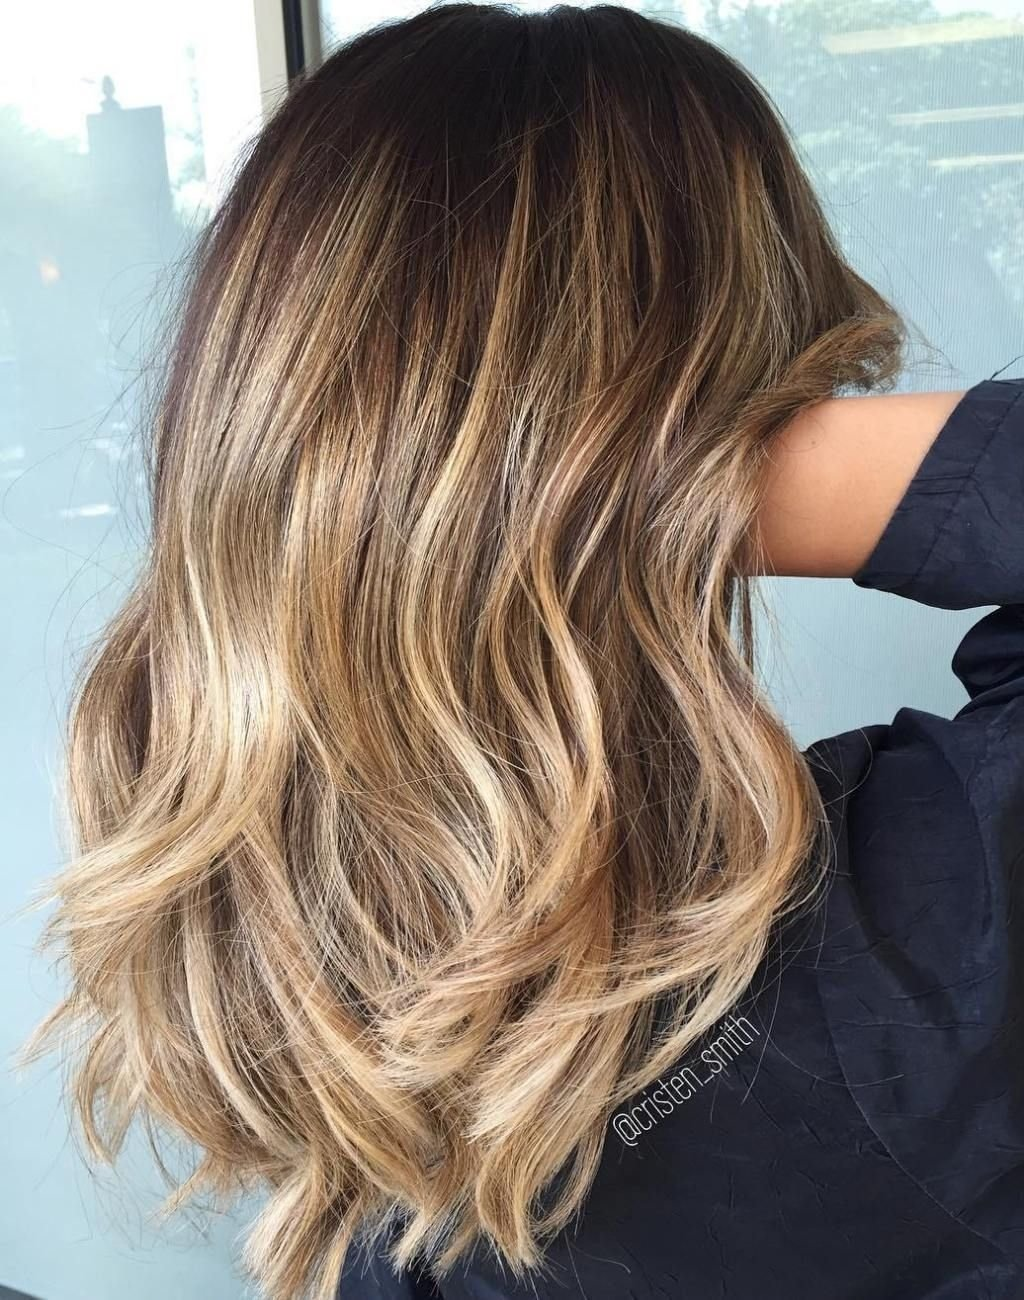 10 Perfect Shoulder Length Hair Color Ideas best balayage hair color ideas 70 flattering styles for 2018 4